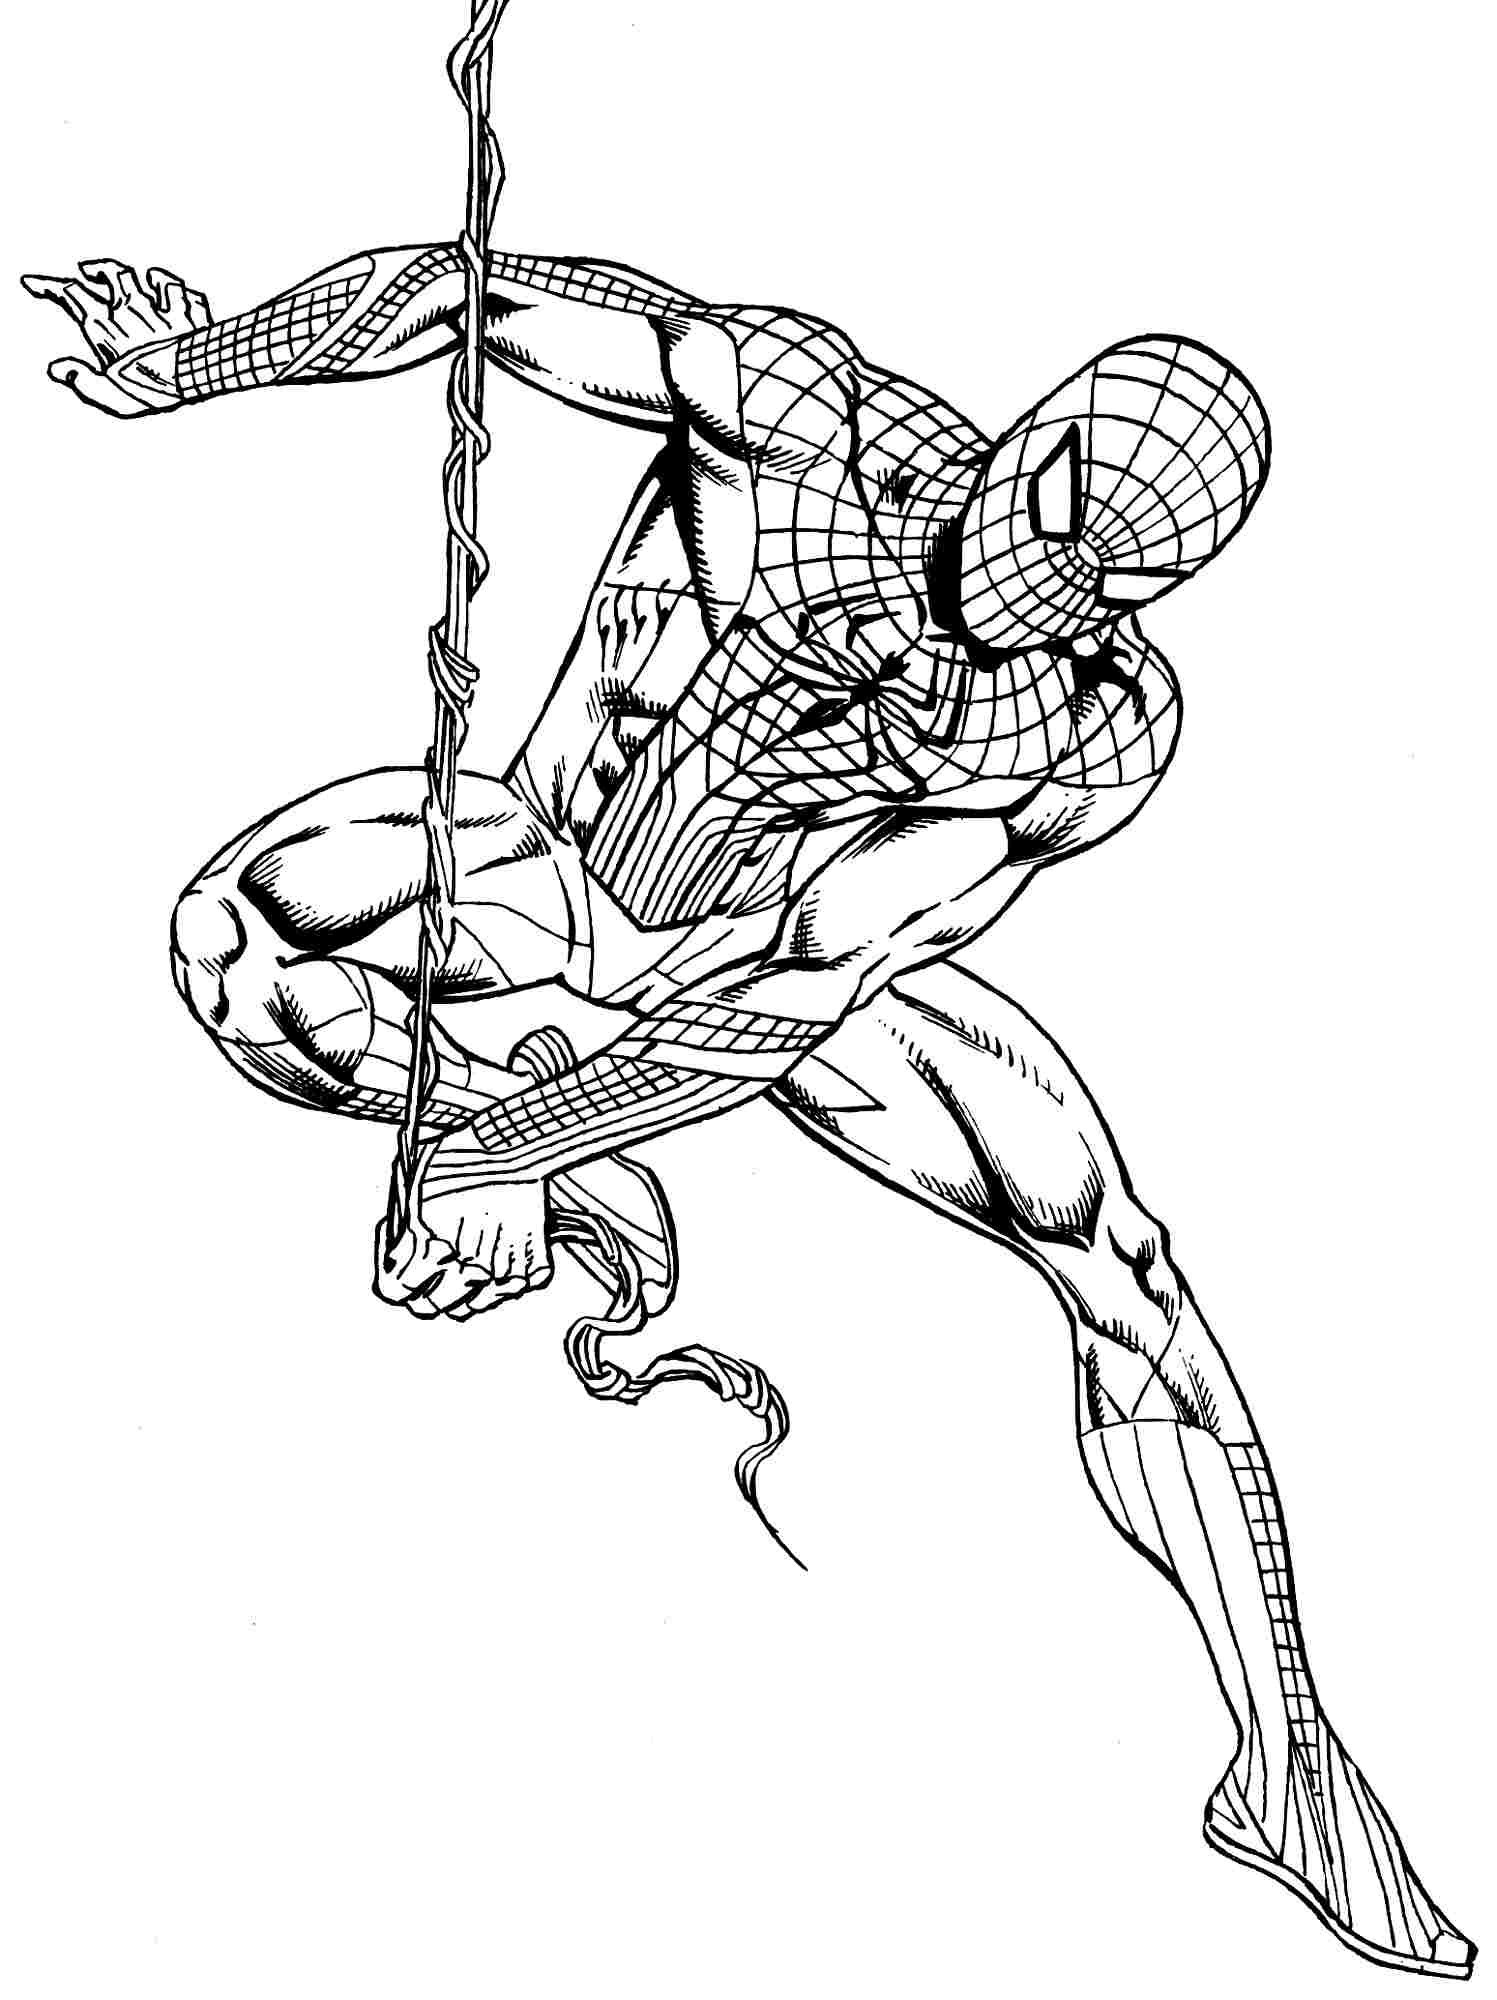 Generic Superhero Coloring Pages